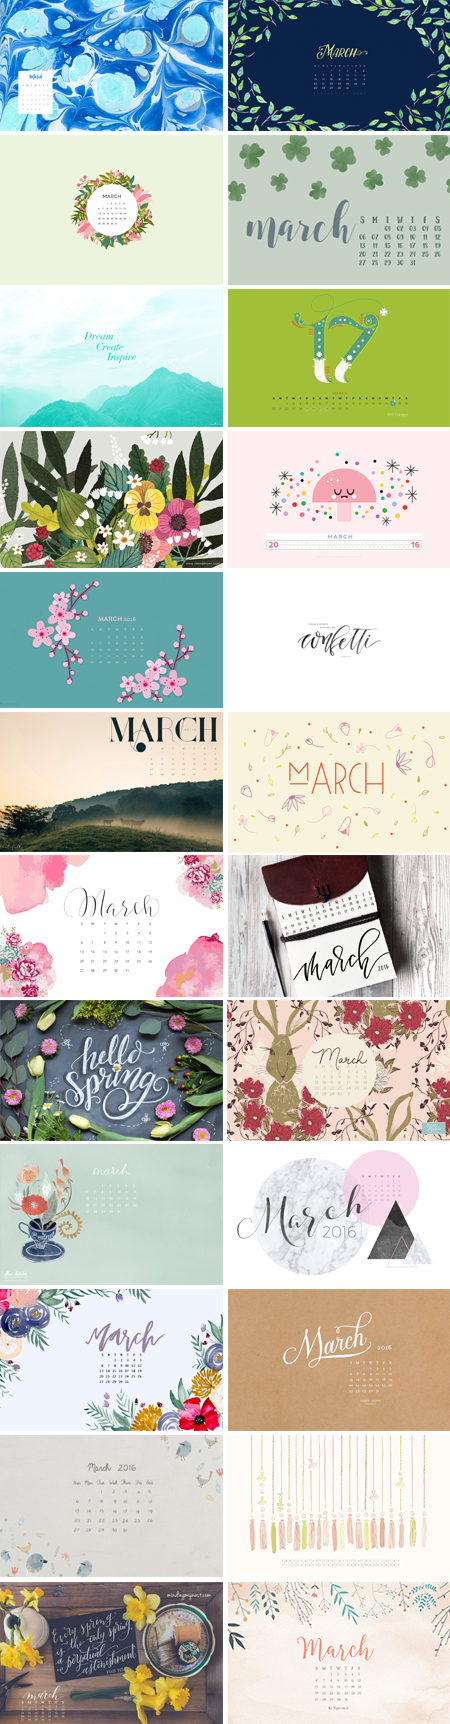 // March 2016 Wallpapers Round-up